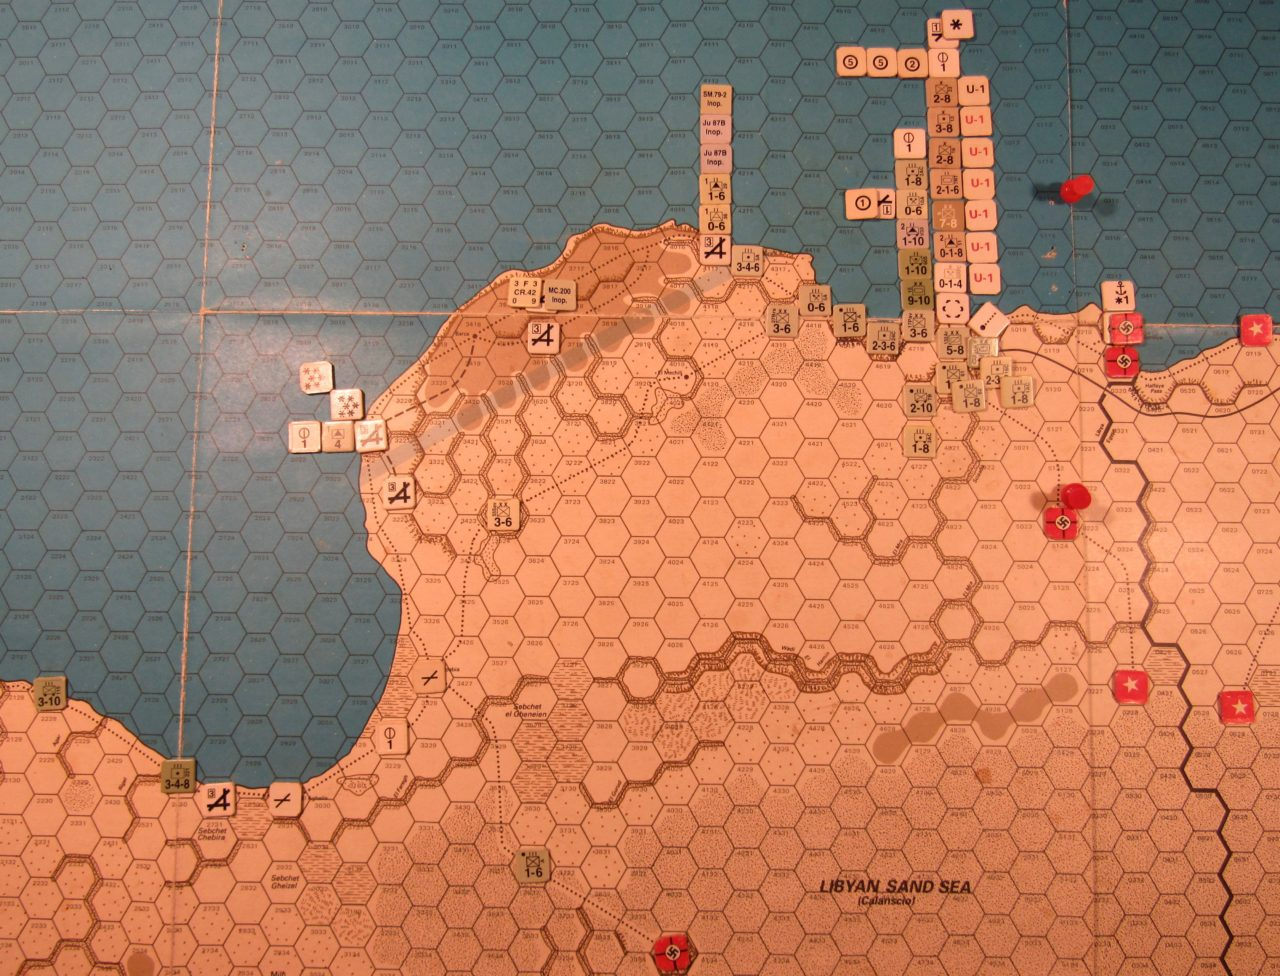 WW ME/ER-II/Crete Scenario May I 41 Axis EOT dispositions: eastern Libya detail